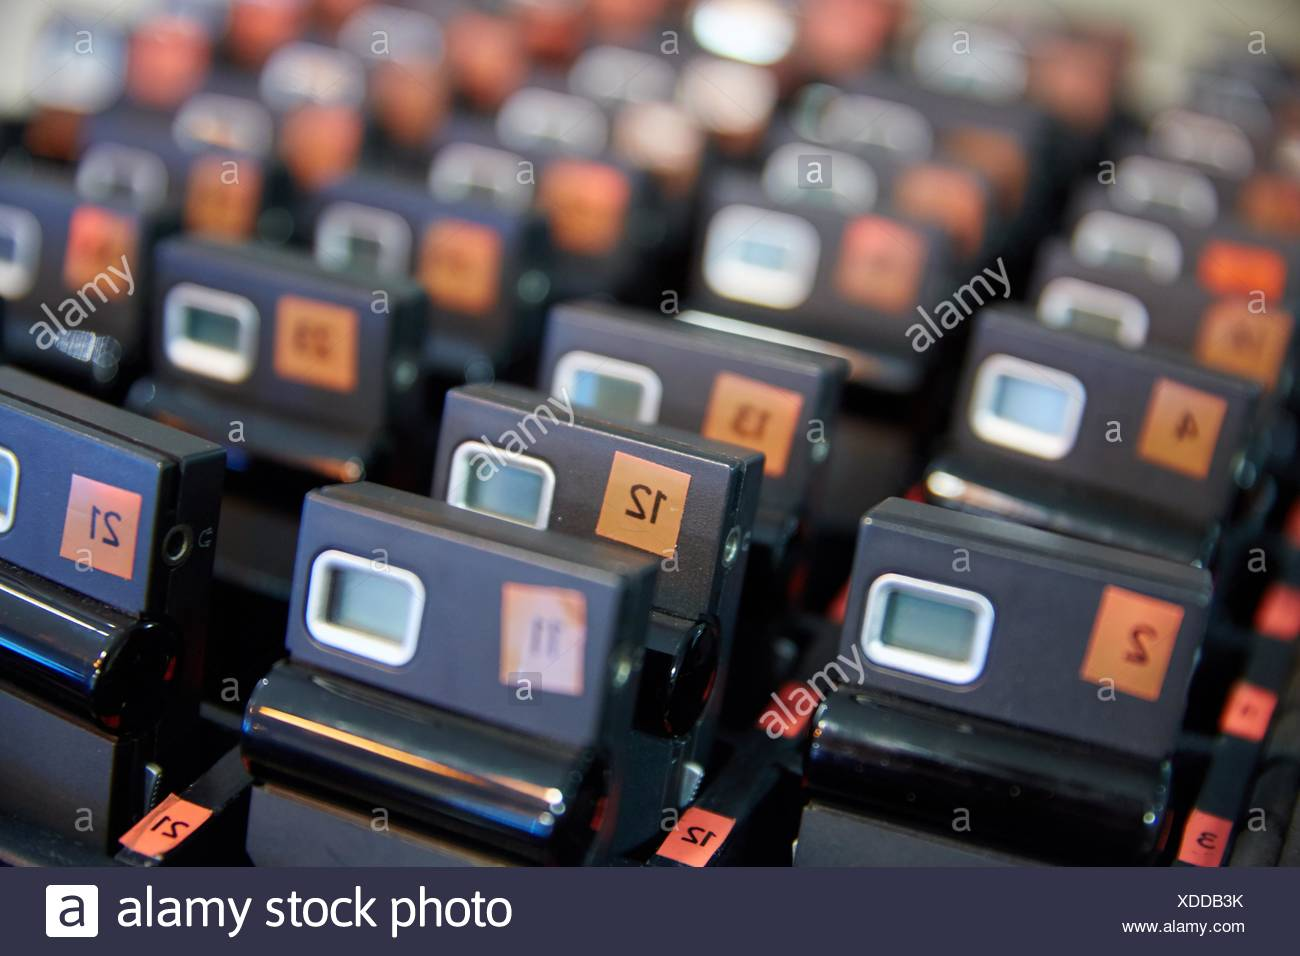 Devices for simultaneous translation. Congress. Seminar. - Stock Image